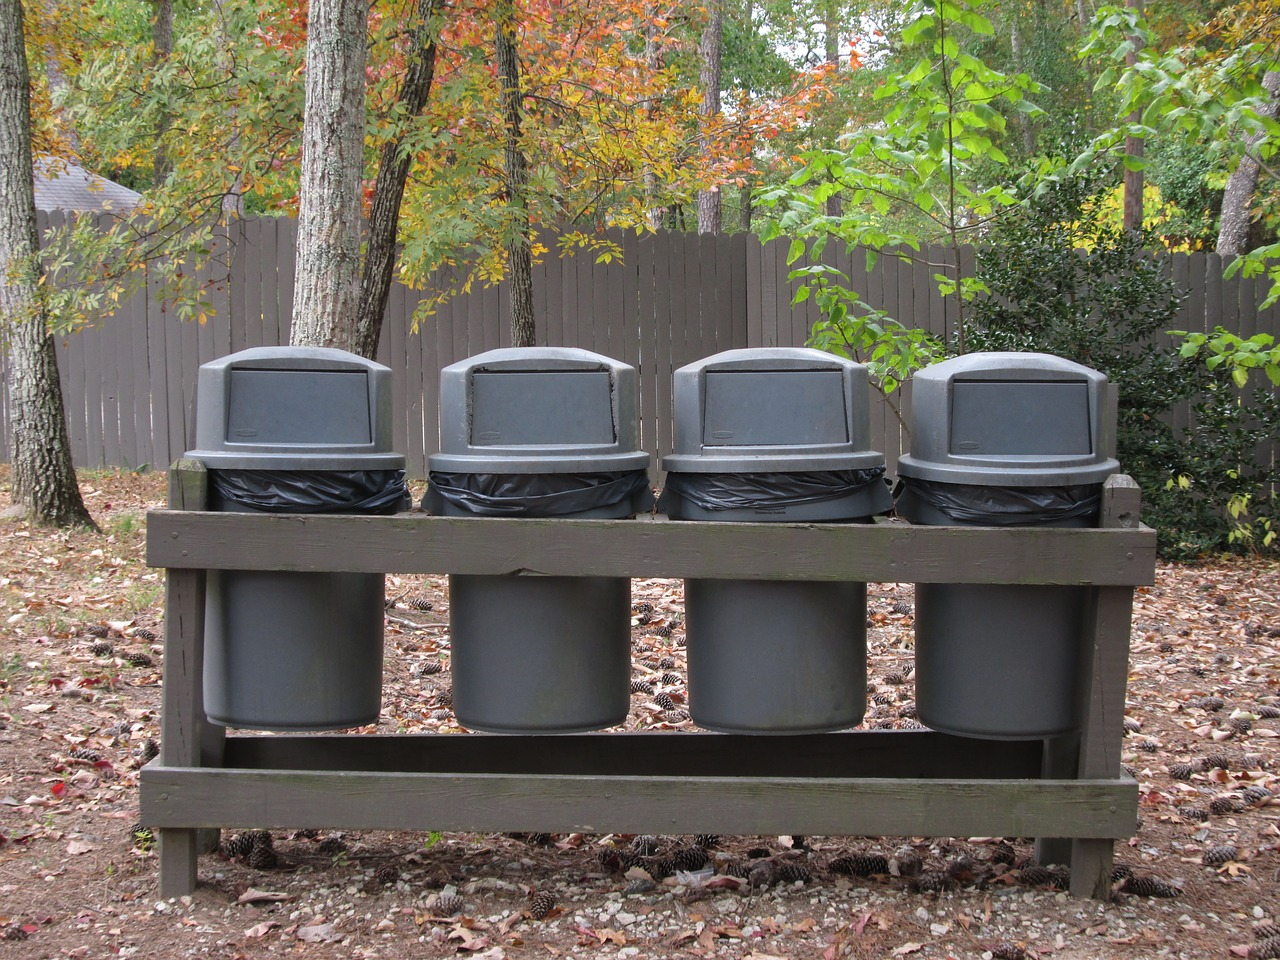 Waste Management: Taking out the Trash in Your Data Center